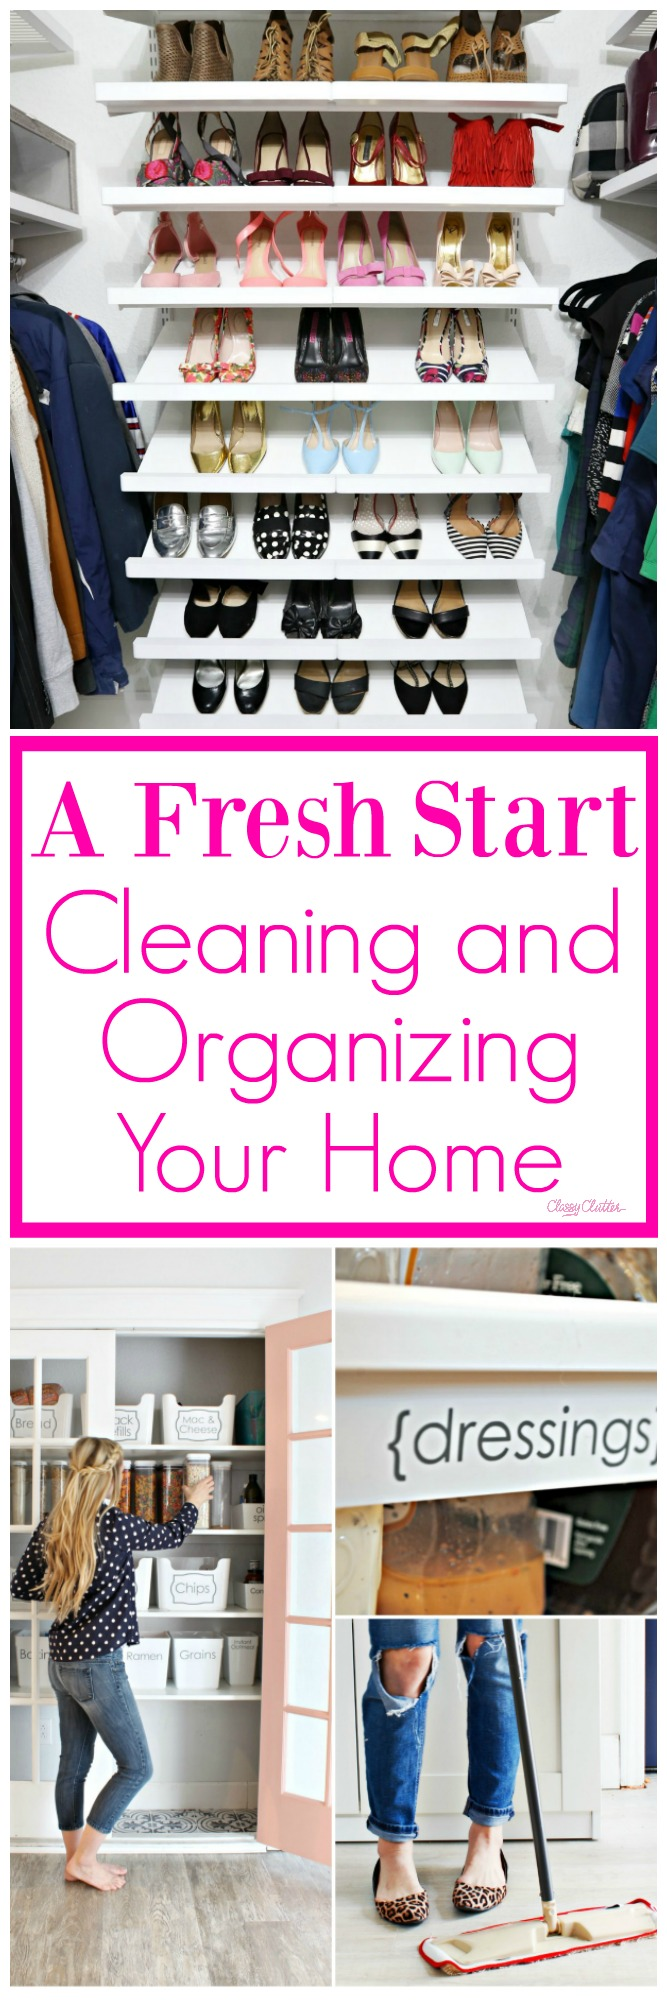 a fresh start cleaning and organizing your home classy